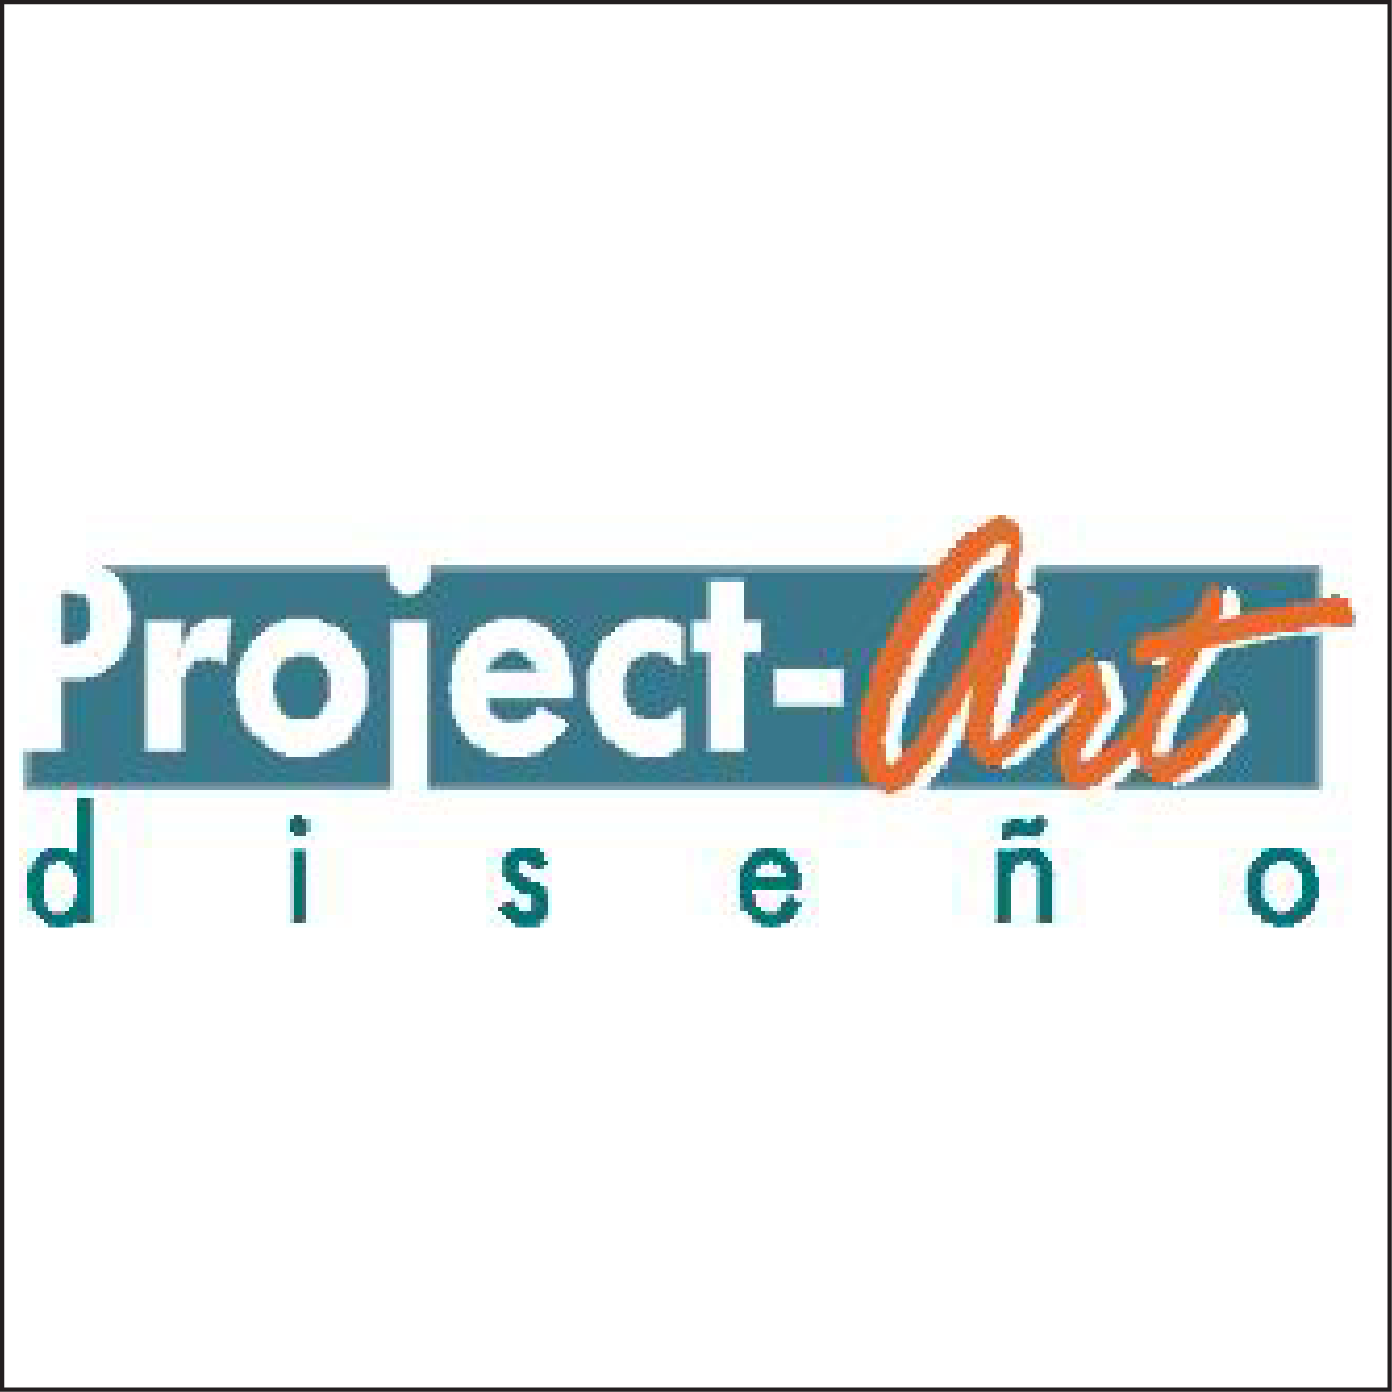 Project-Art Diseño